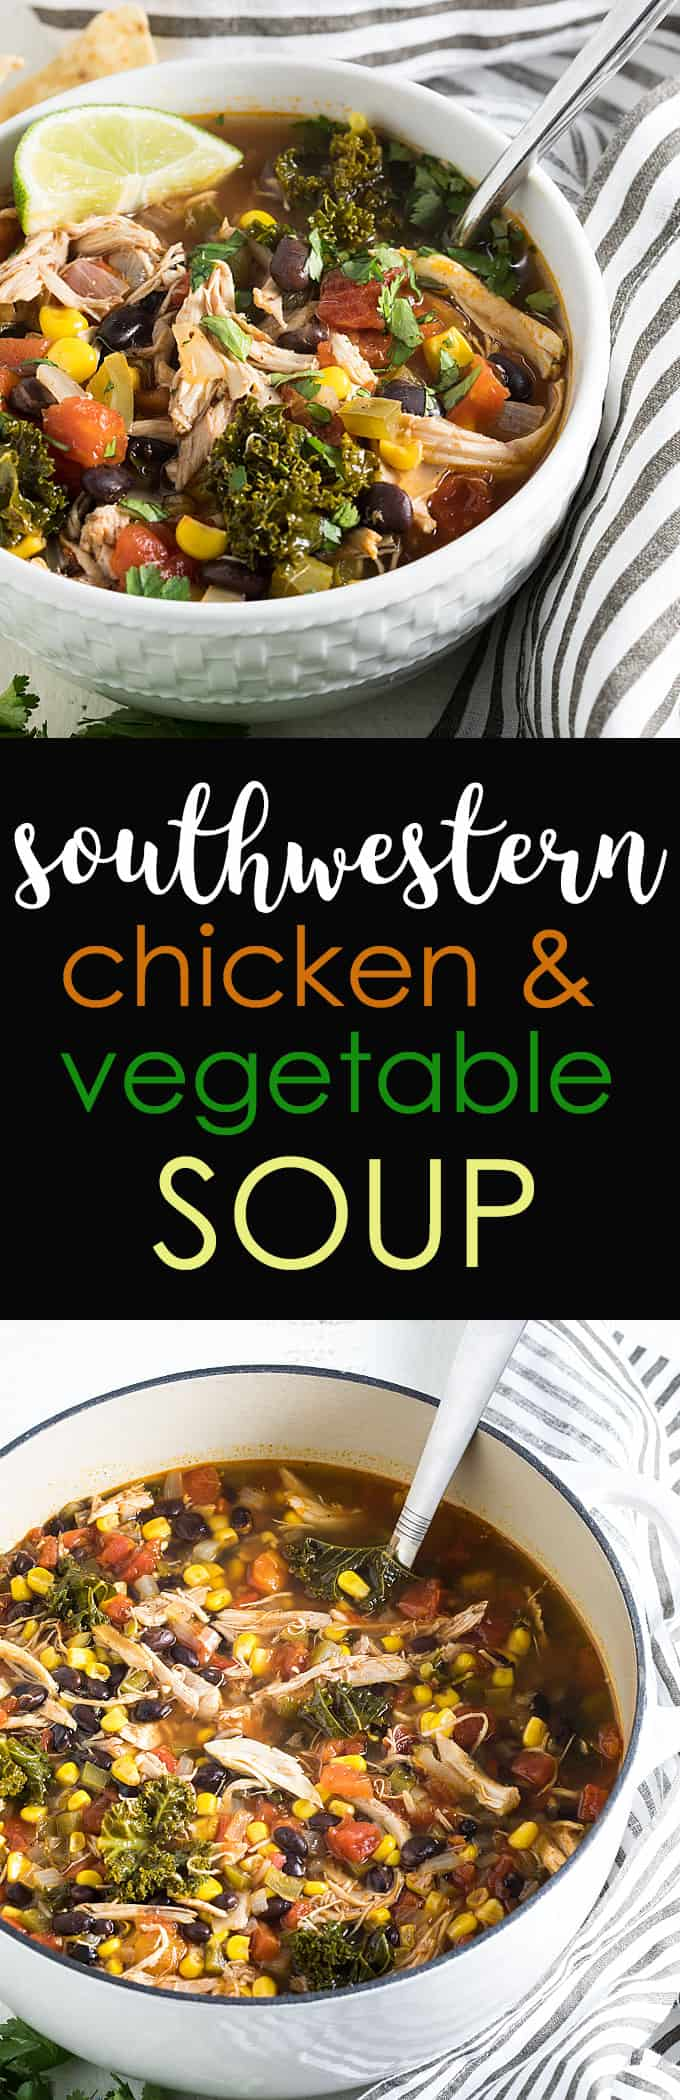 Southwestern Chicken and Vegetable Soup - An easy, hearty and healthy soup packed full of flavor!